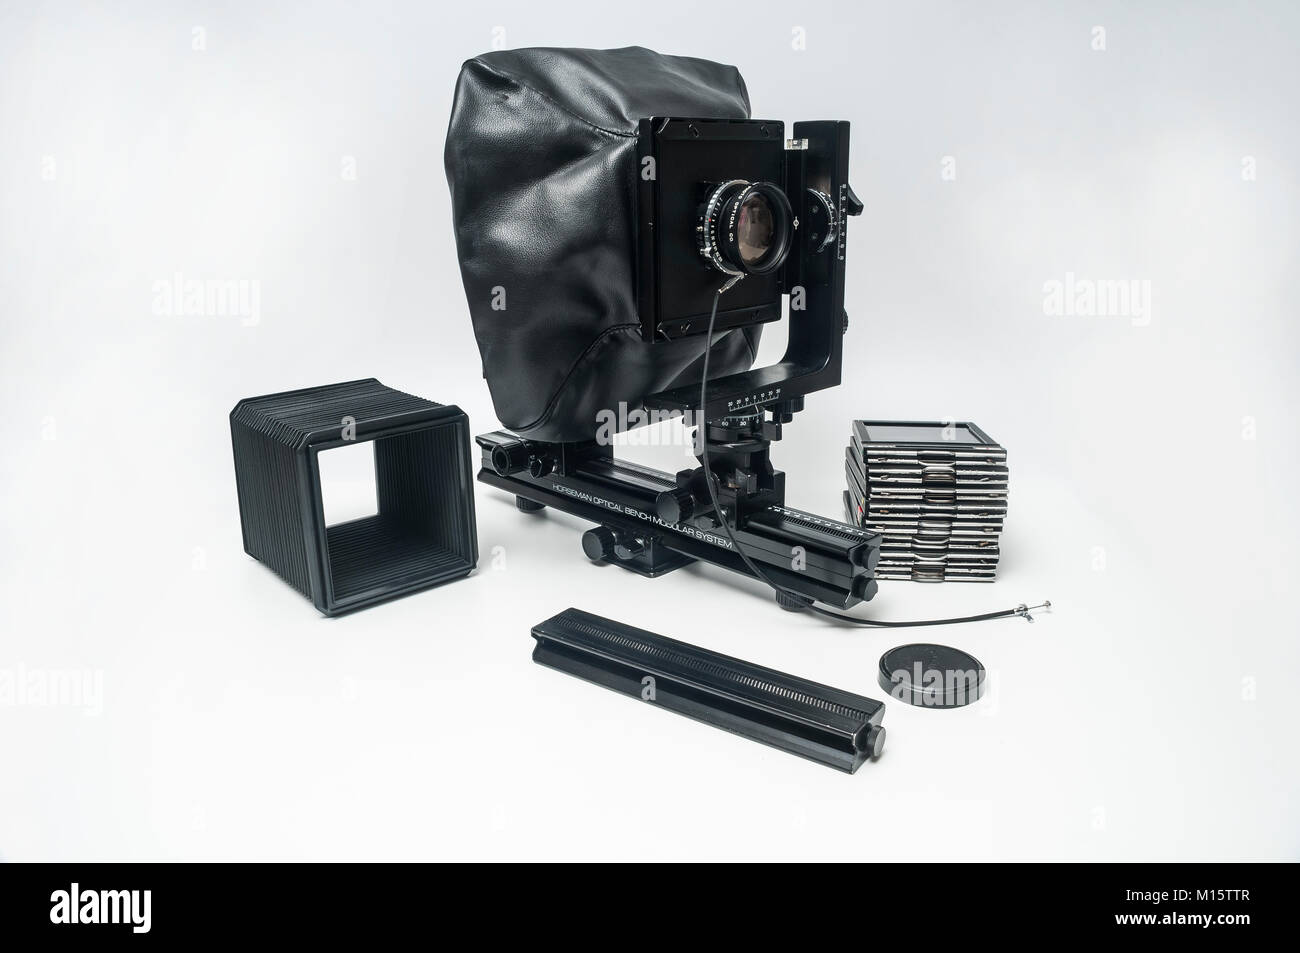 Horseman 4X5 Large Format View Camera - Stock Image